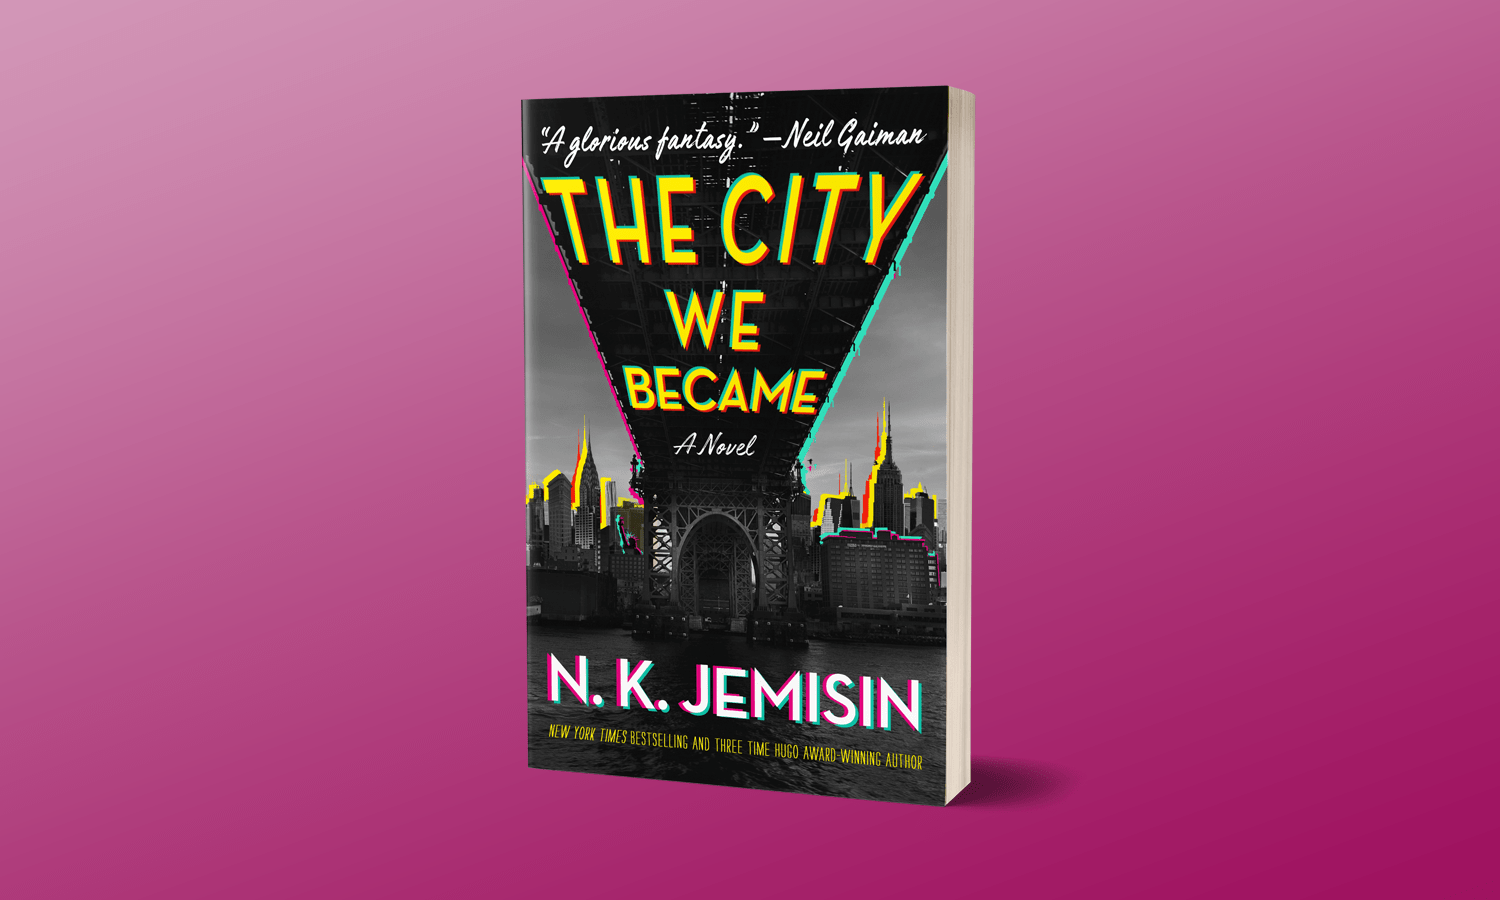 Greatest City On Earth: The City We Became by N. K. Jemisin